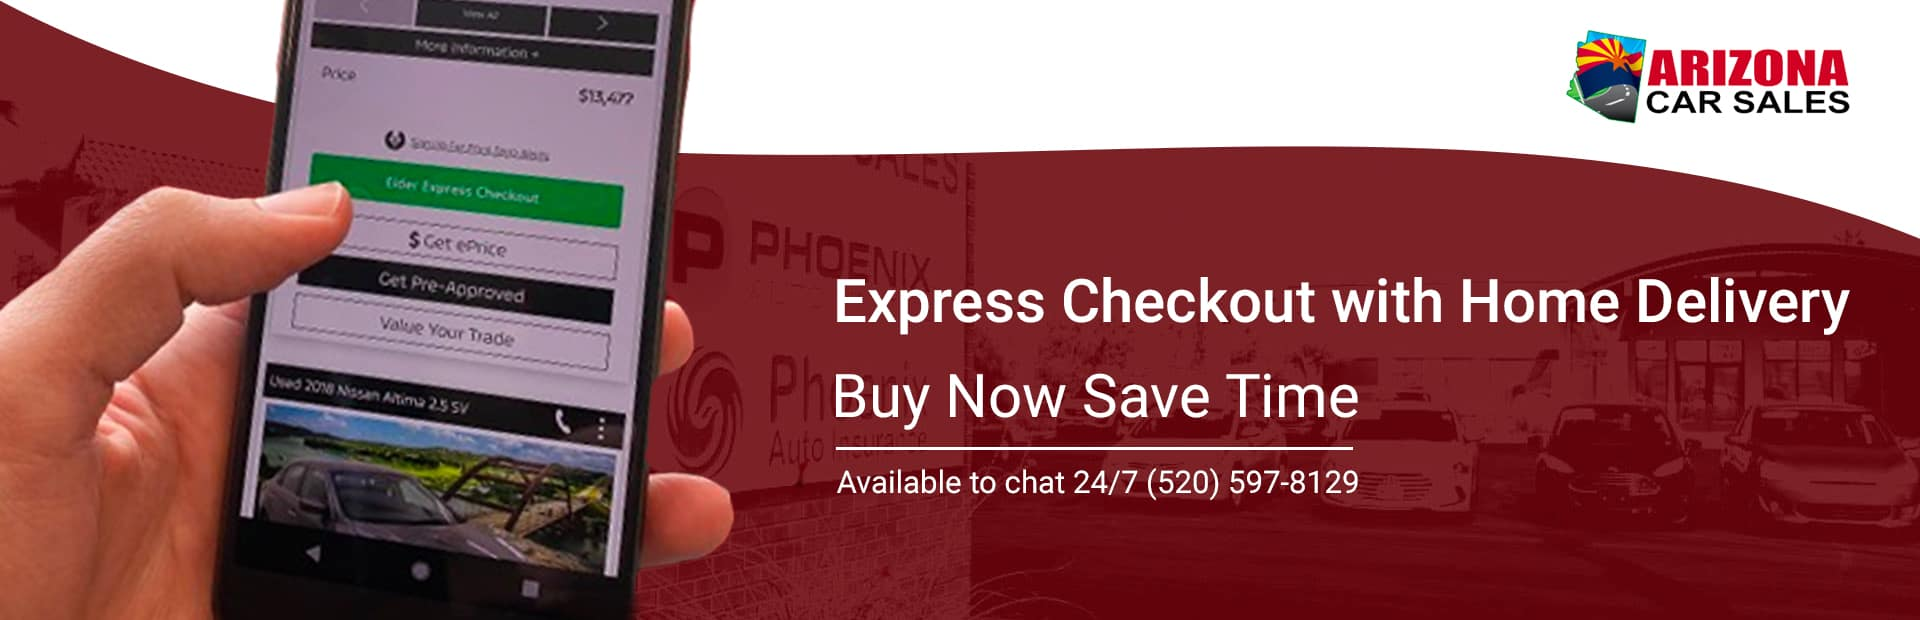 Express checkout with home delivery buy now, save time